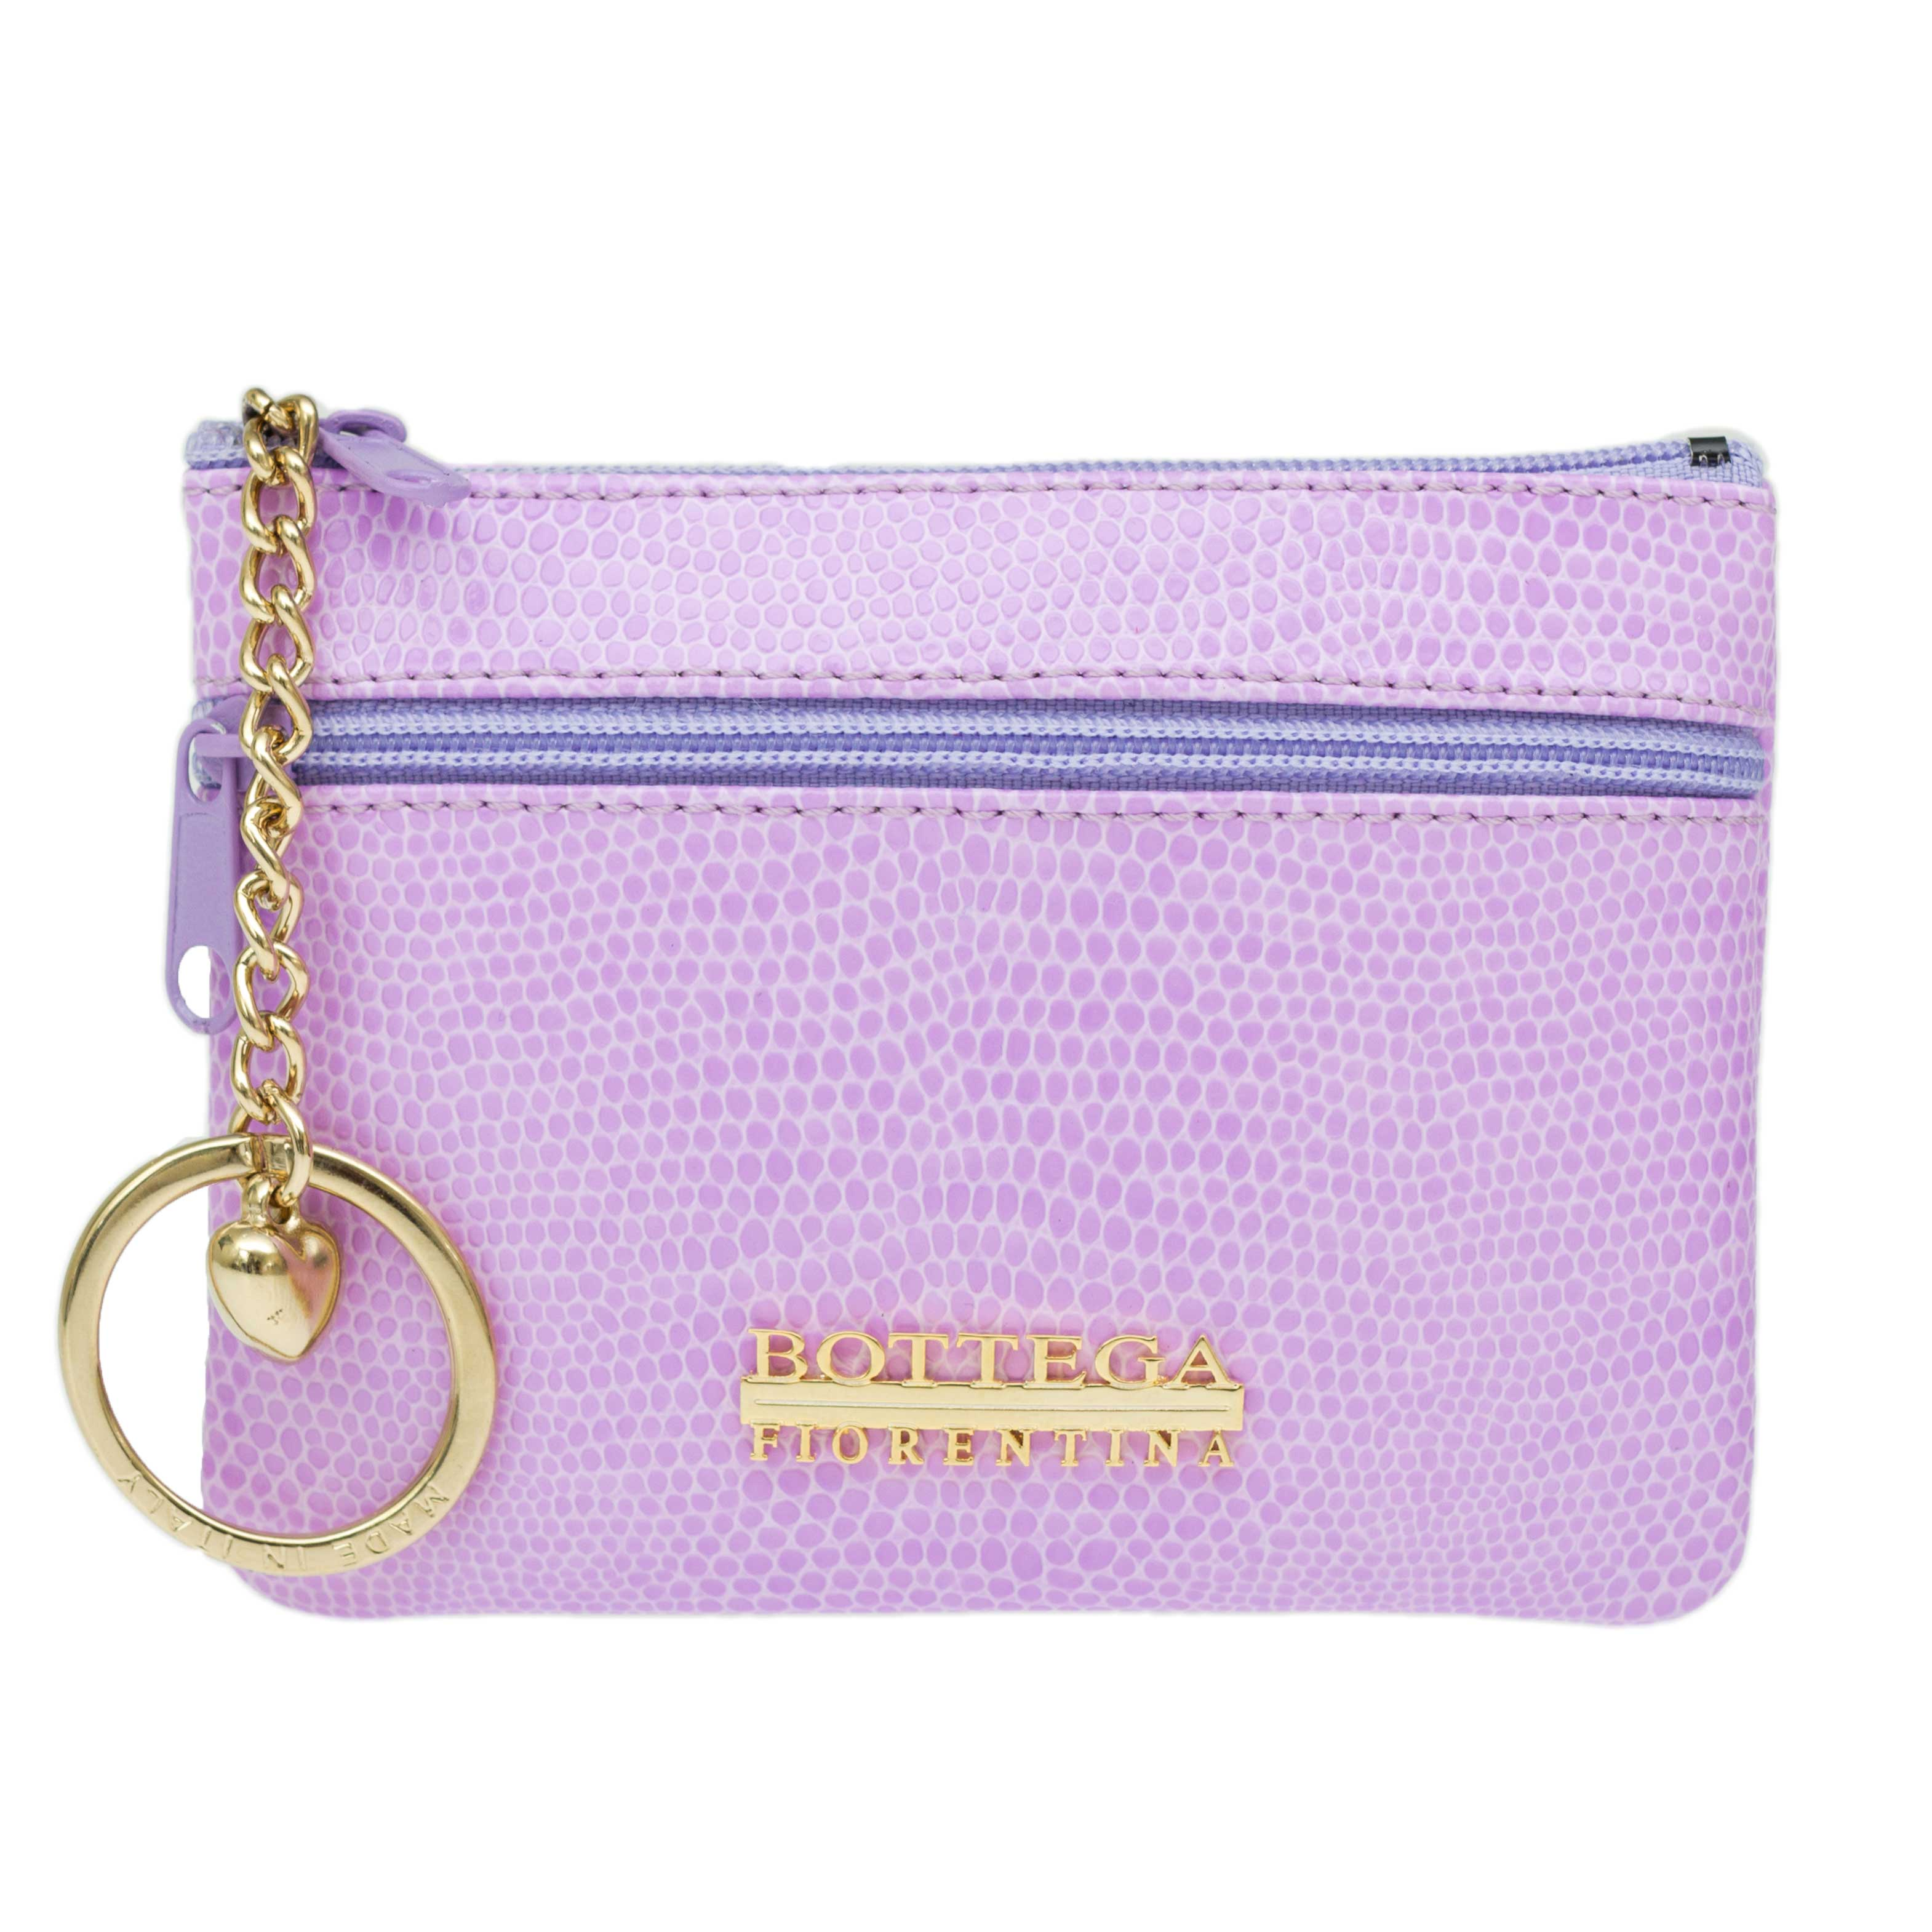 Bottega Fiorentina Italian Made Lilac Lizard Print Leather Small Womens Key Case